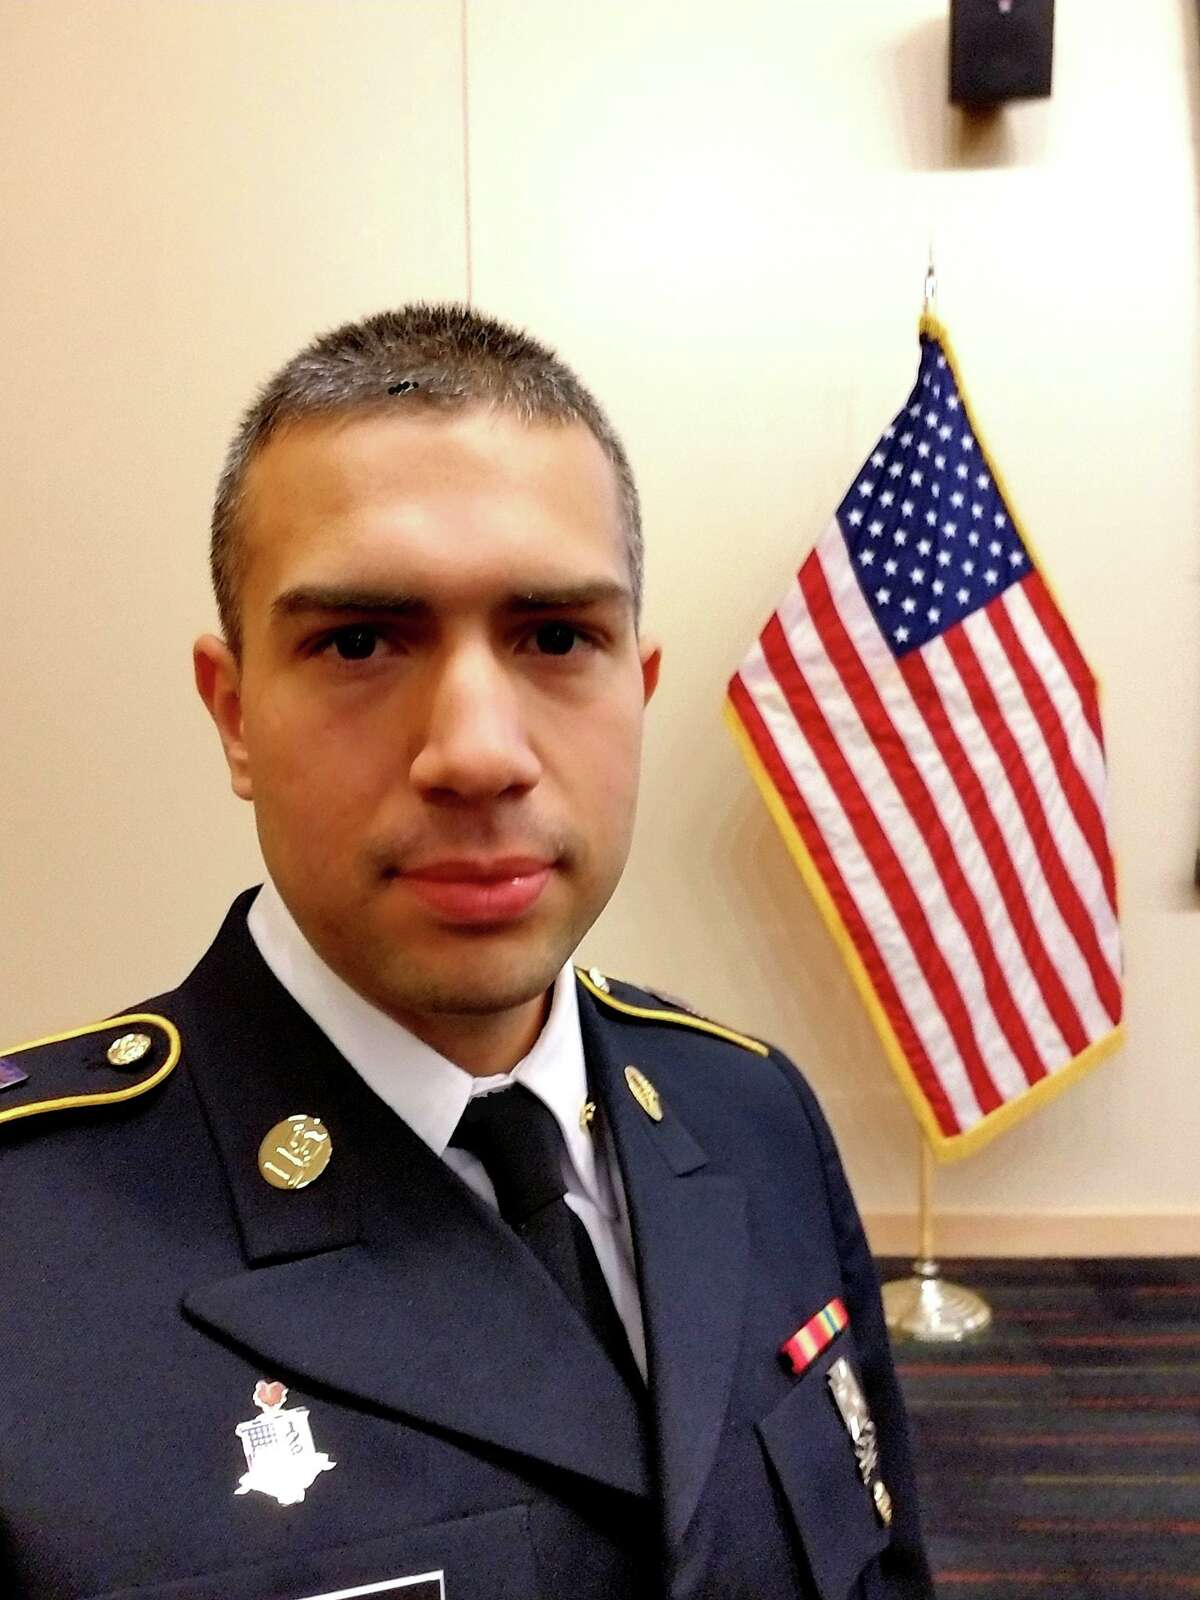 J.D. Ospina, who was medically discharged from the Army, is running for the 145th House District.